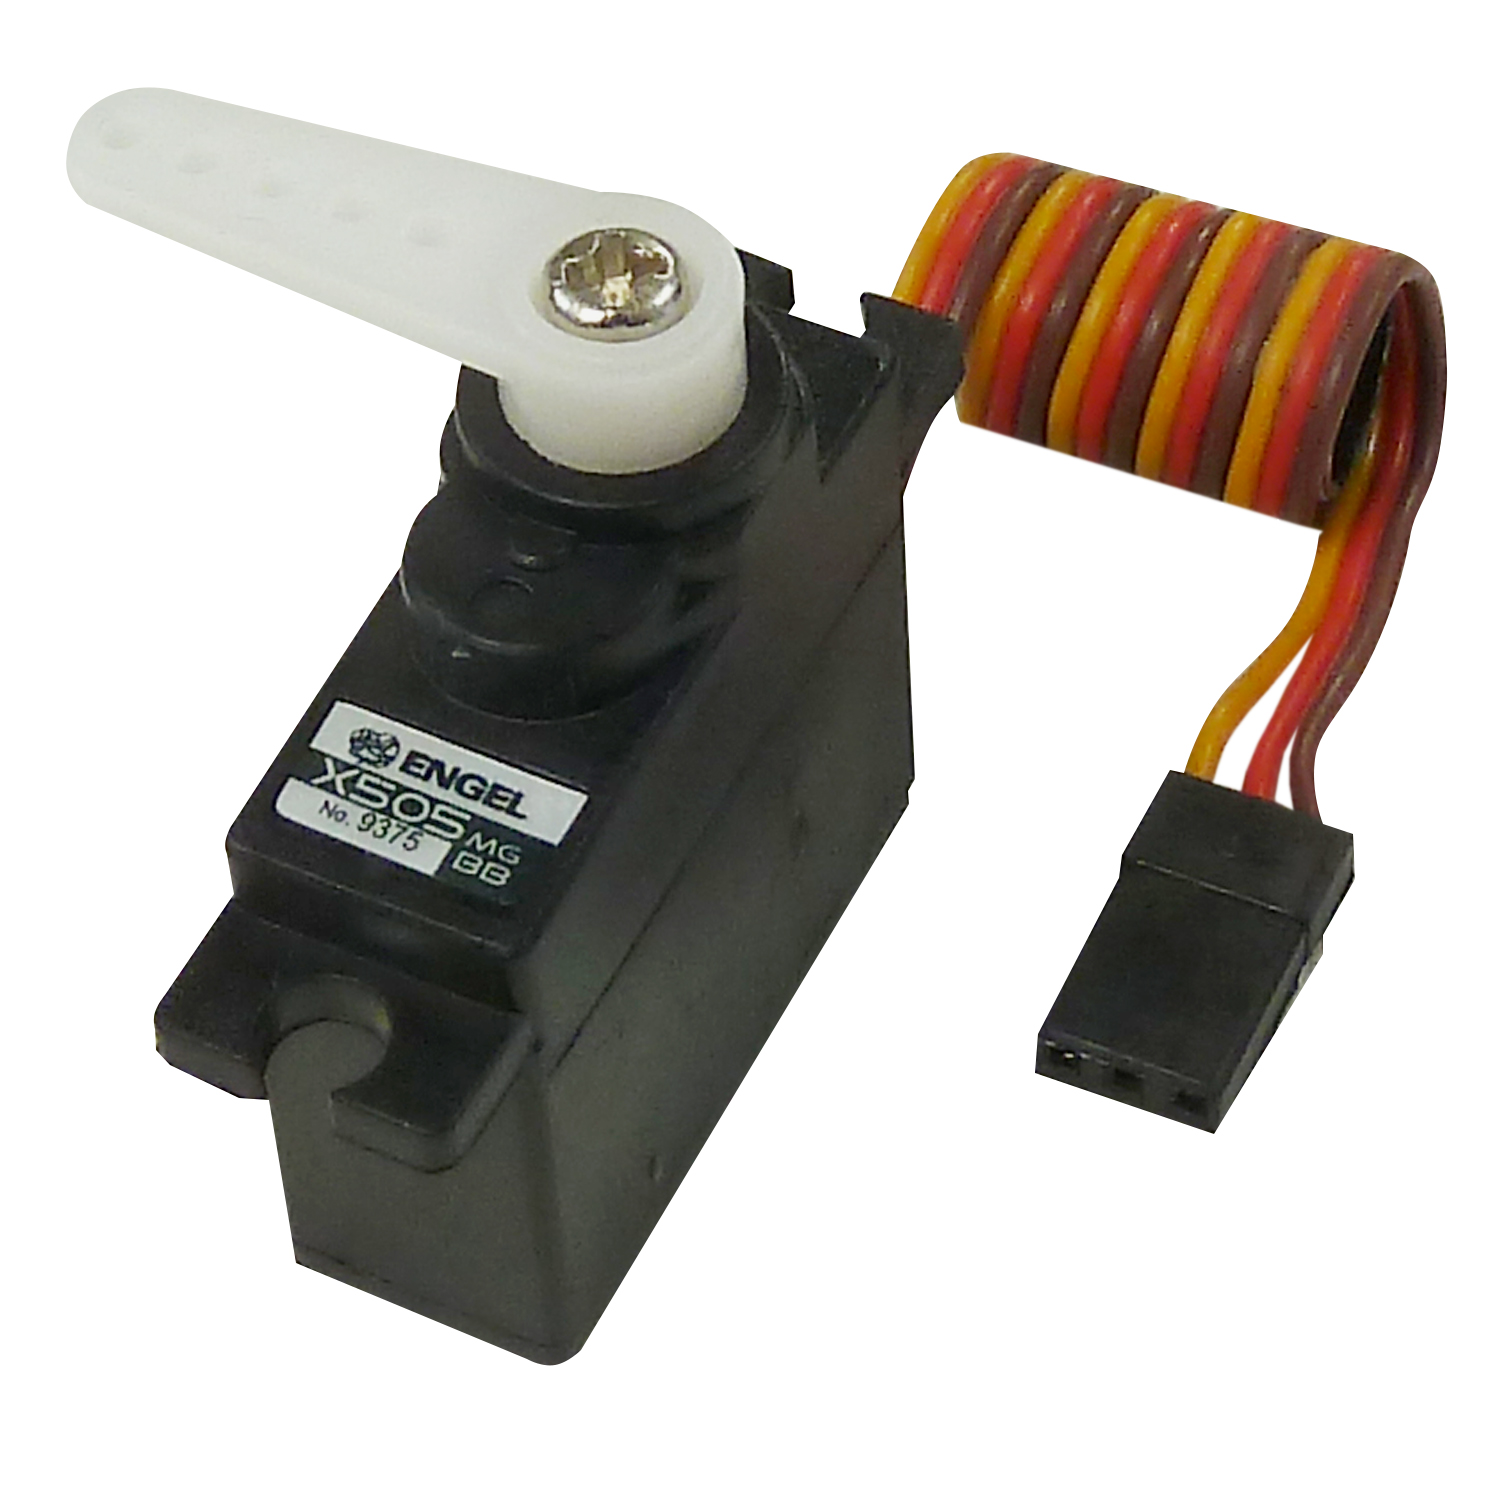 Applying Digital Isolators In Motor Control likewise Sad 20emo 20crying further Megazine in addition Georgia 20bulldogs also Index php. on how to destroy a motor controller 2